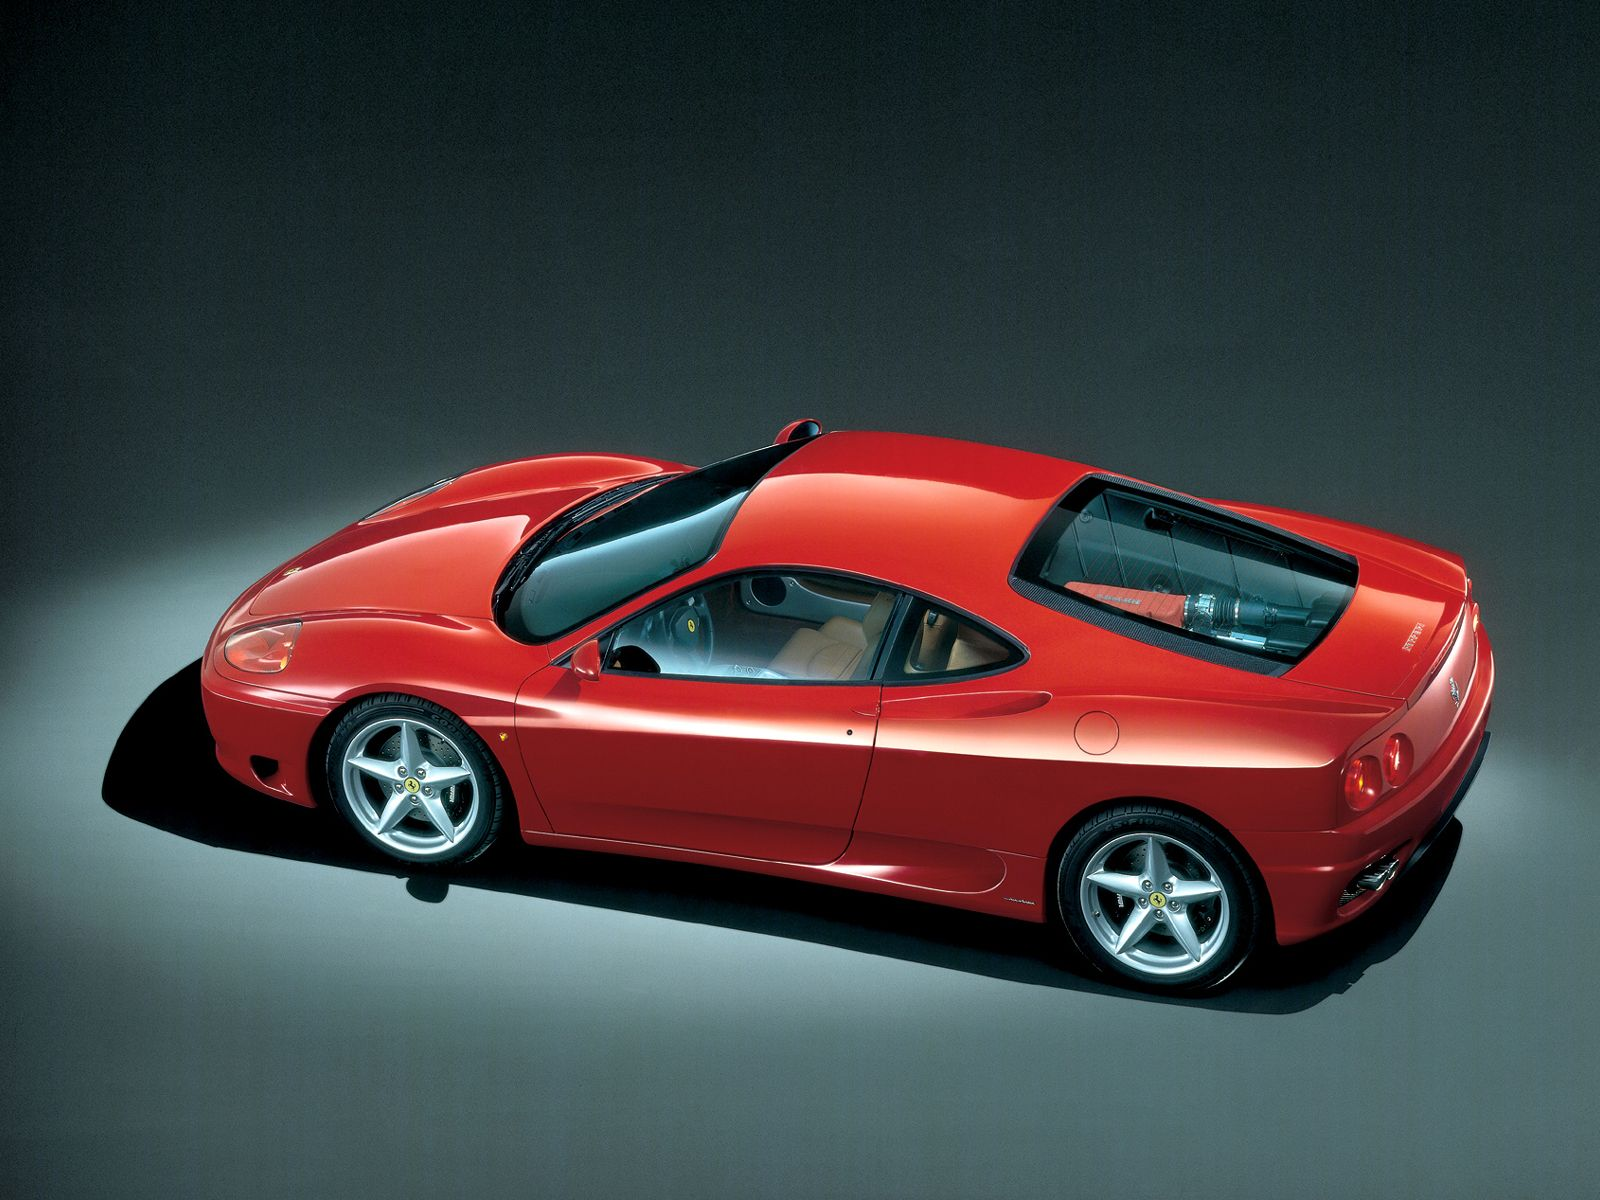 3dtuning of ferrari 360 modena coupe 1999 unique on line car configurator for. Black Bedroom Furniture Sets. Home Design Ideas